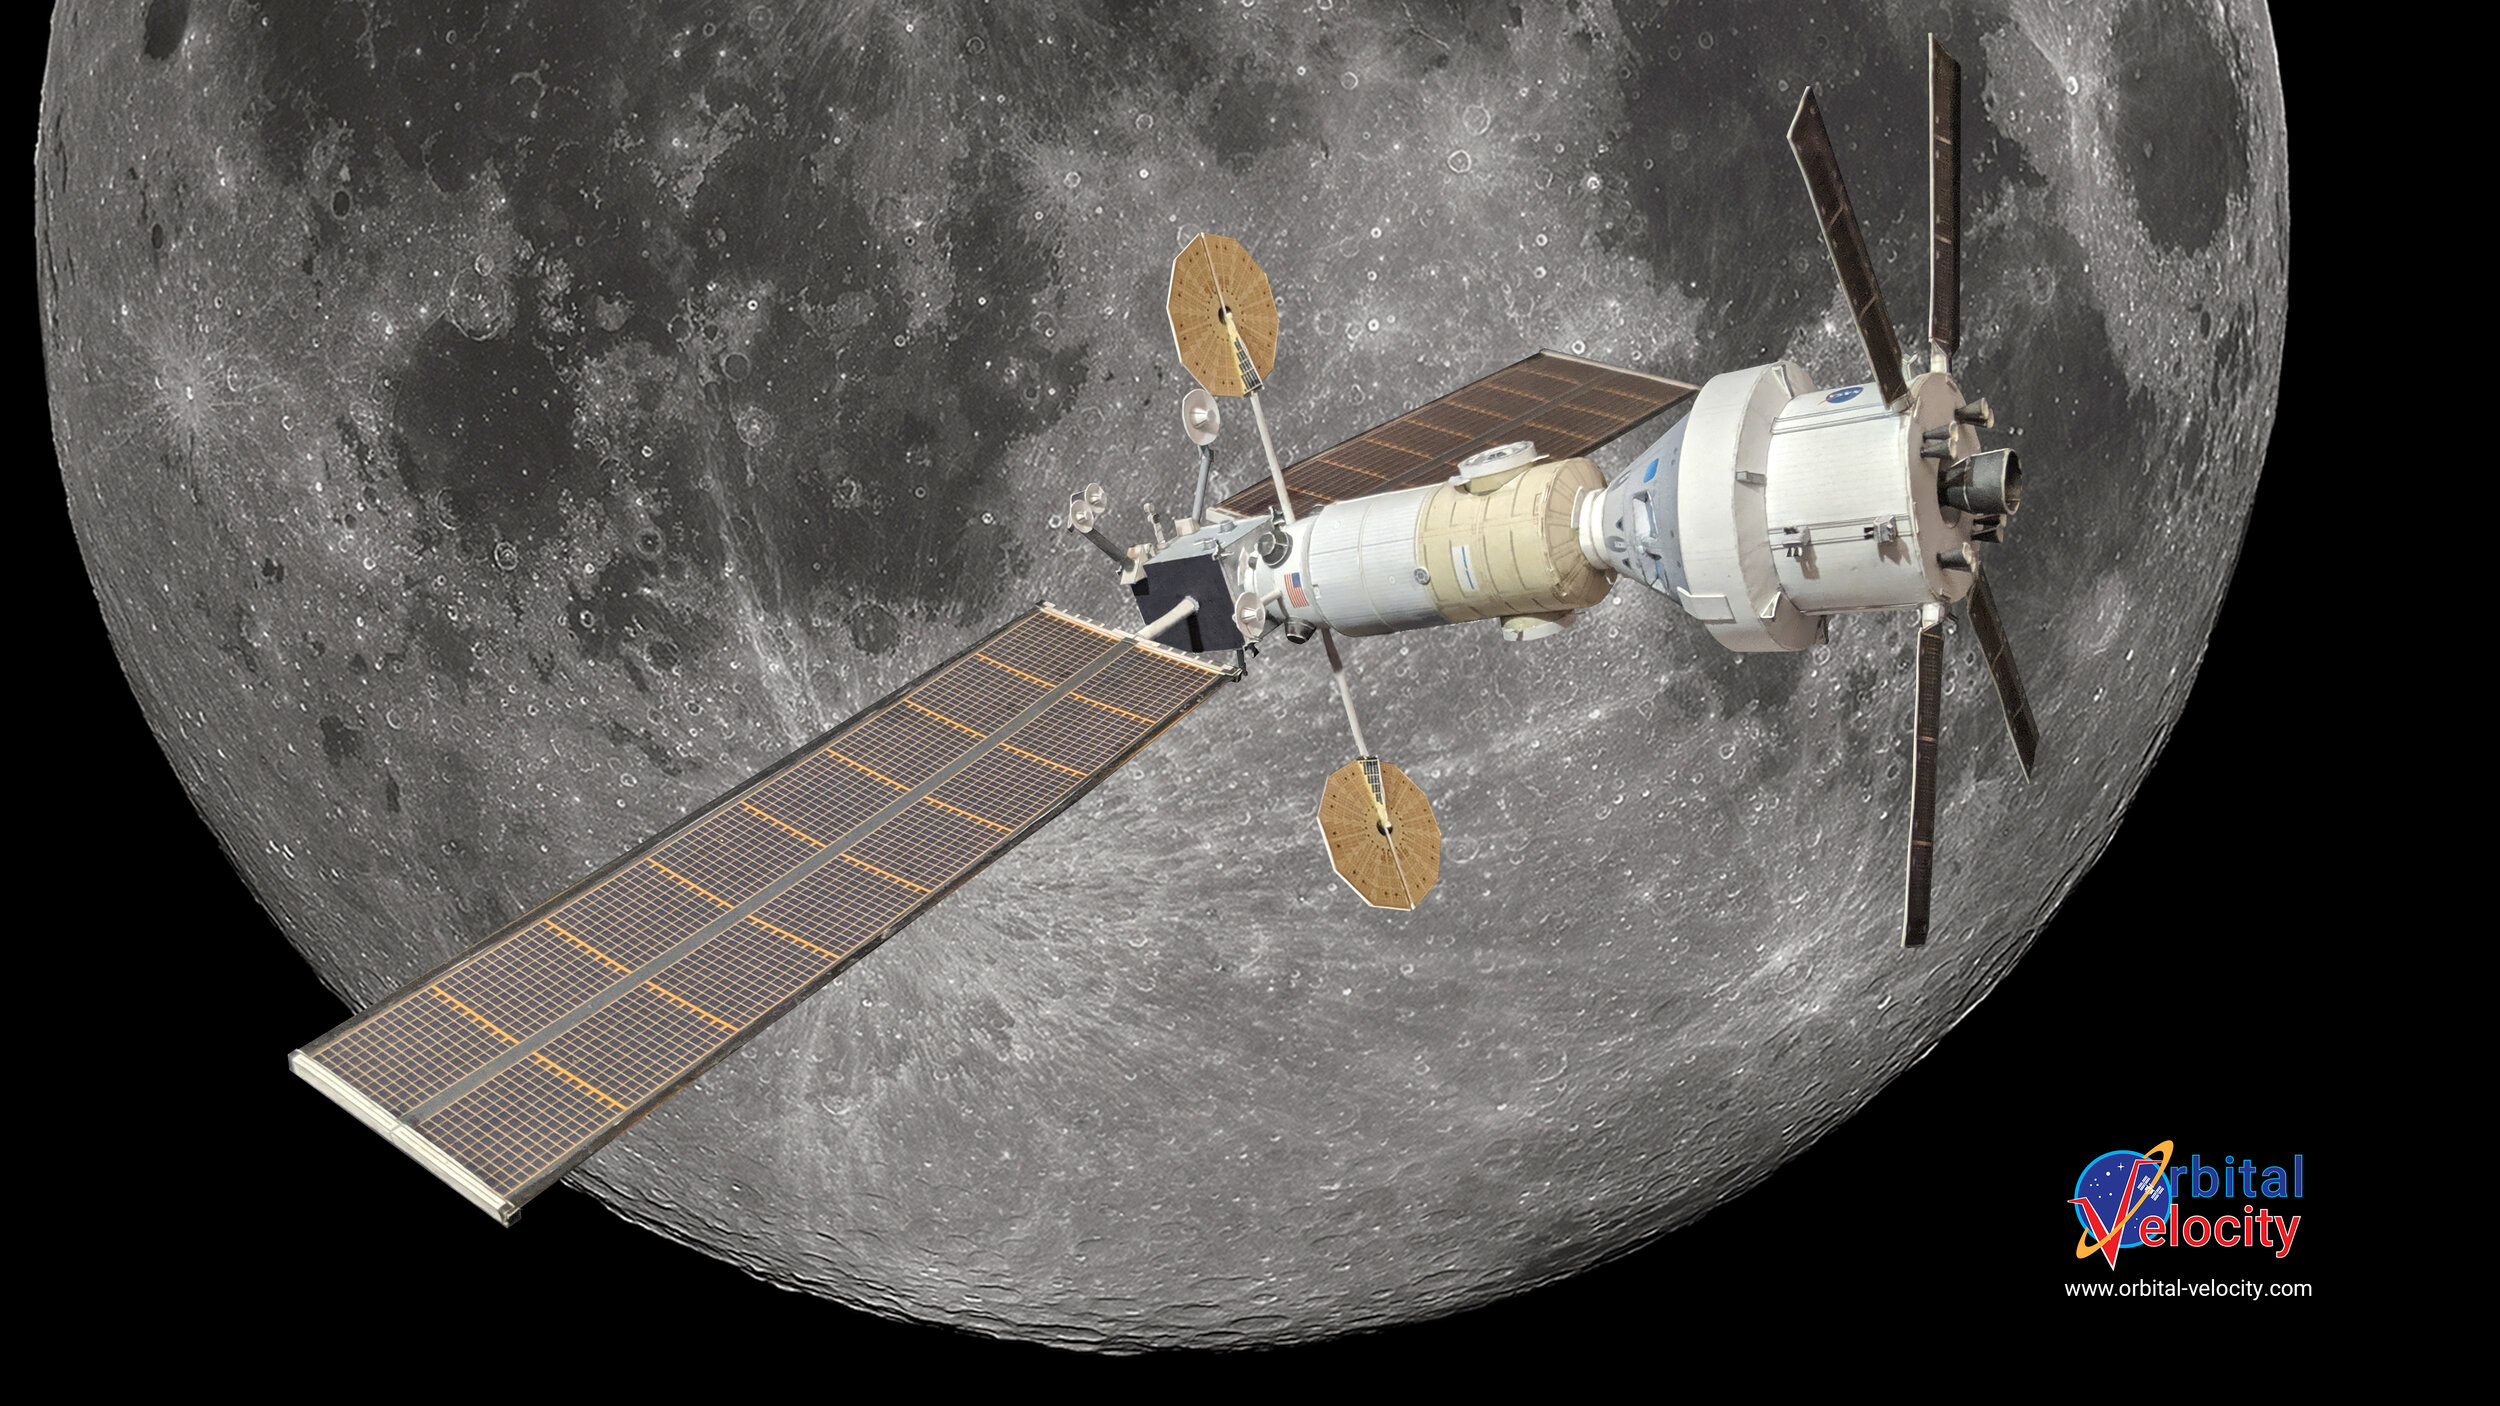 A possible concept of NASA's Lunar Gateway in orbit around the Moon with an Orion spacecraft docked. Credit: Orbital Velocity